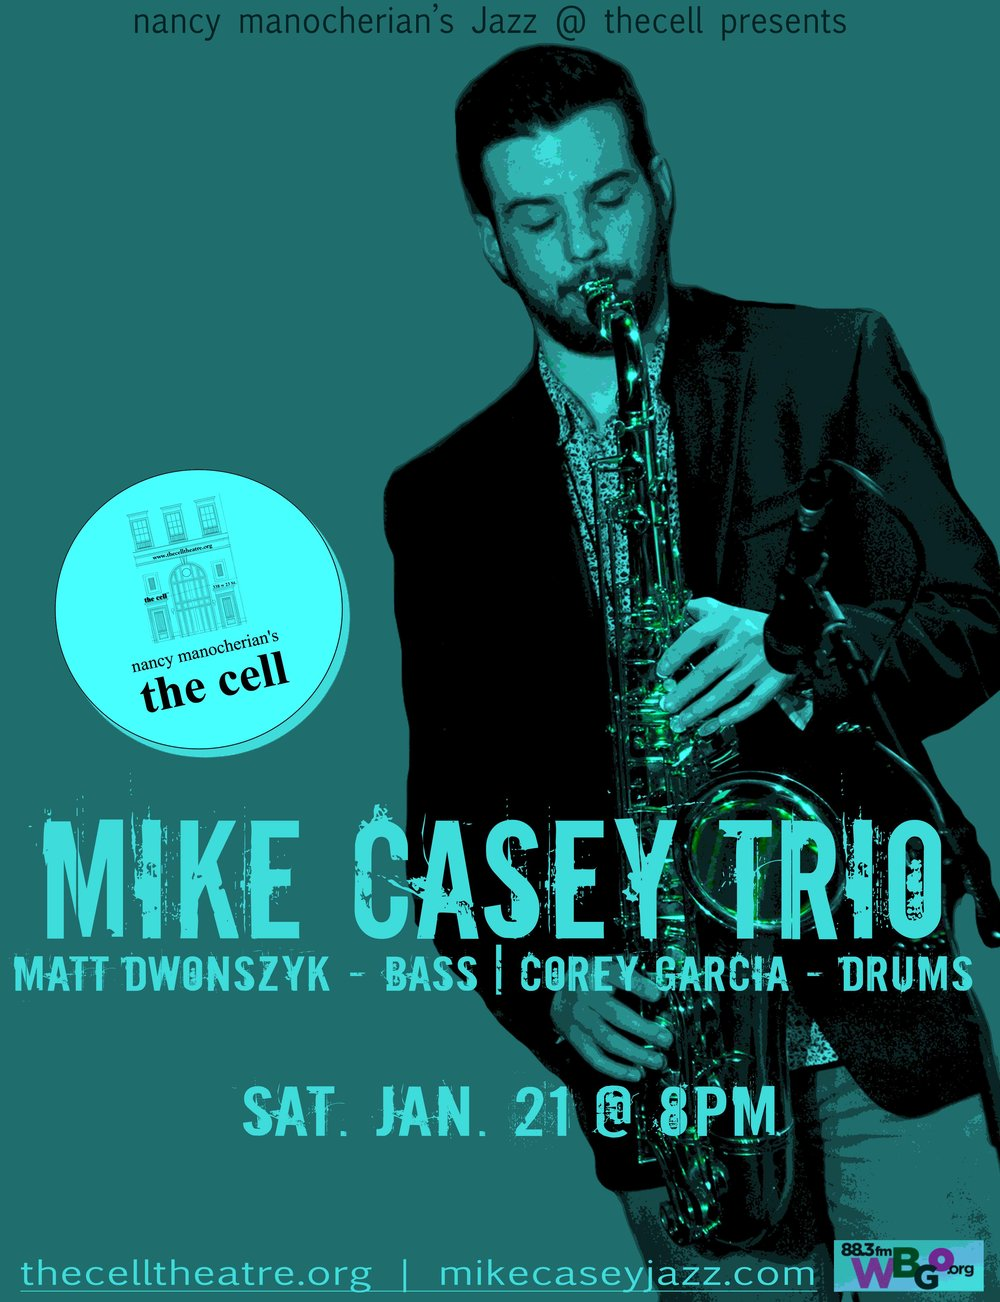 "Saxophonist, songwriter, and teaching artist  Mike Casey  has been a fixture on the Hartford jazz scene and beyond since 2011, when he began attending the acclaimed  Jackie McLean  Institute of Jazz at the University of Harford's Hartt School. In 2015, Mike was one of 24 young jazz composers worldwide chosen by Jason Moran to participate in the prestigious ""Betty Carter Jazz Ahead"" Program at the Kennedy Center in Washington, DC where he studied with an all-star faculty including  Eric Harland, JD Allen, Eric Revis, Cyrus Chestnut , and  Jason Moran .   After a sold out NYC debut at the Minton's in Harlem in September 2016, Mike went on to accomplish an incredible feat: the crowdfunding campaign for his debut album ""The Sound of Surprise: Live at The Side Door"" (due for a February 2017 release) reached 111% funded in under 30 days. His resume includes appearances with  Charles Tolliver, DJ Logic, Brandee Younger, Zaccai Curtis, Tarus Mateen  and  Marc Cary , whose project  ""The Harlem Sessions""  features Mike as an original member.  Mike has enchanted audiences young & old alike, performing a unique blend of upbeat, accessible, original music and exciting arrangements of jazz standards with a mature lyricism and a sound that commands the attention of the audience."